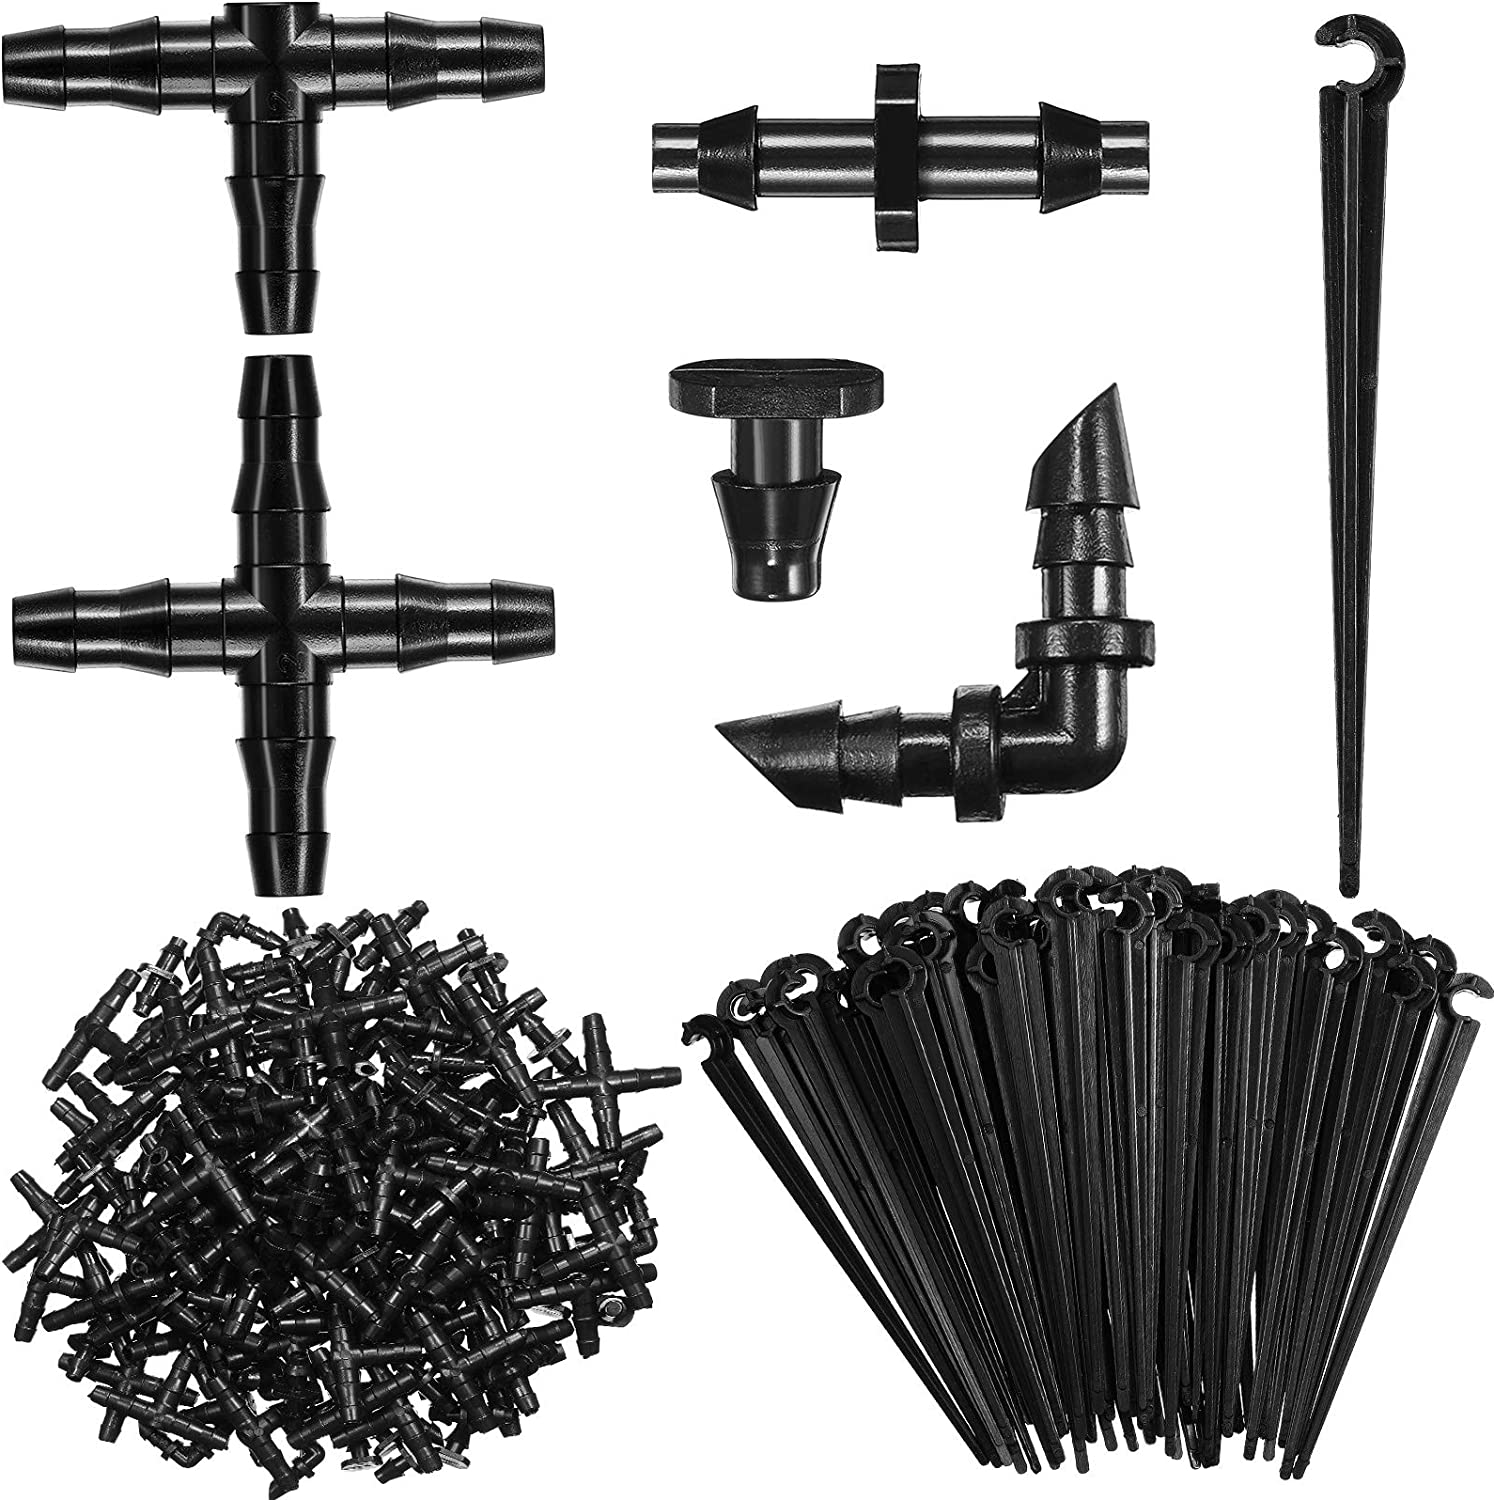 Irrigation Be super welcome Fittings Kit Portland Mall Drip St 80 Connectors Include